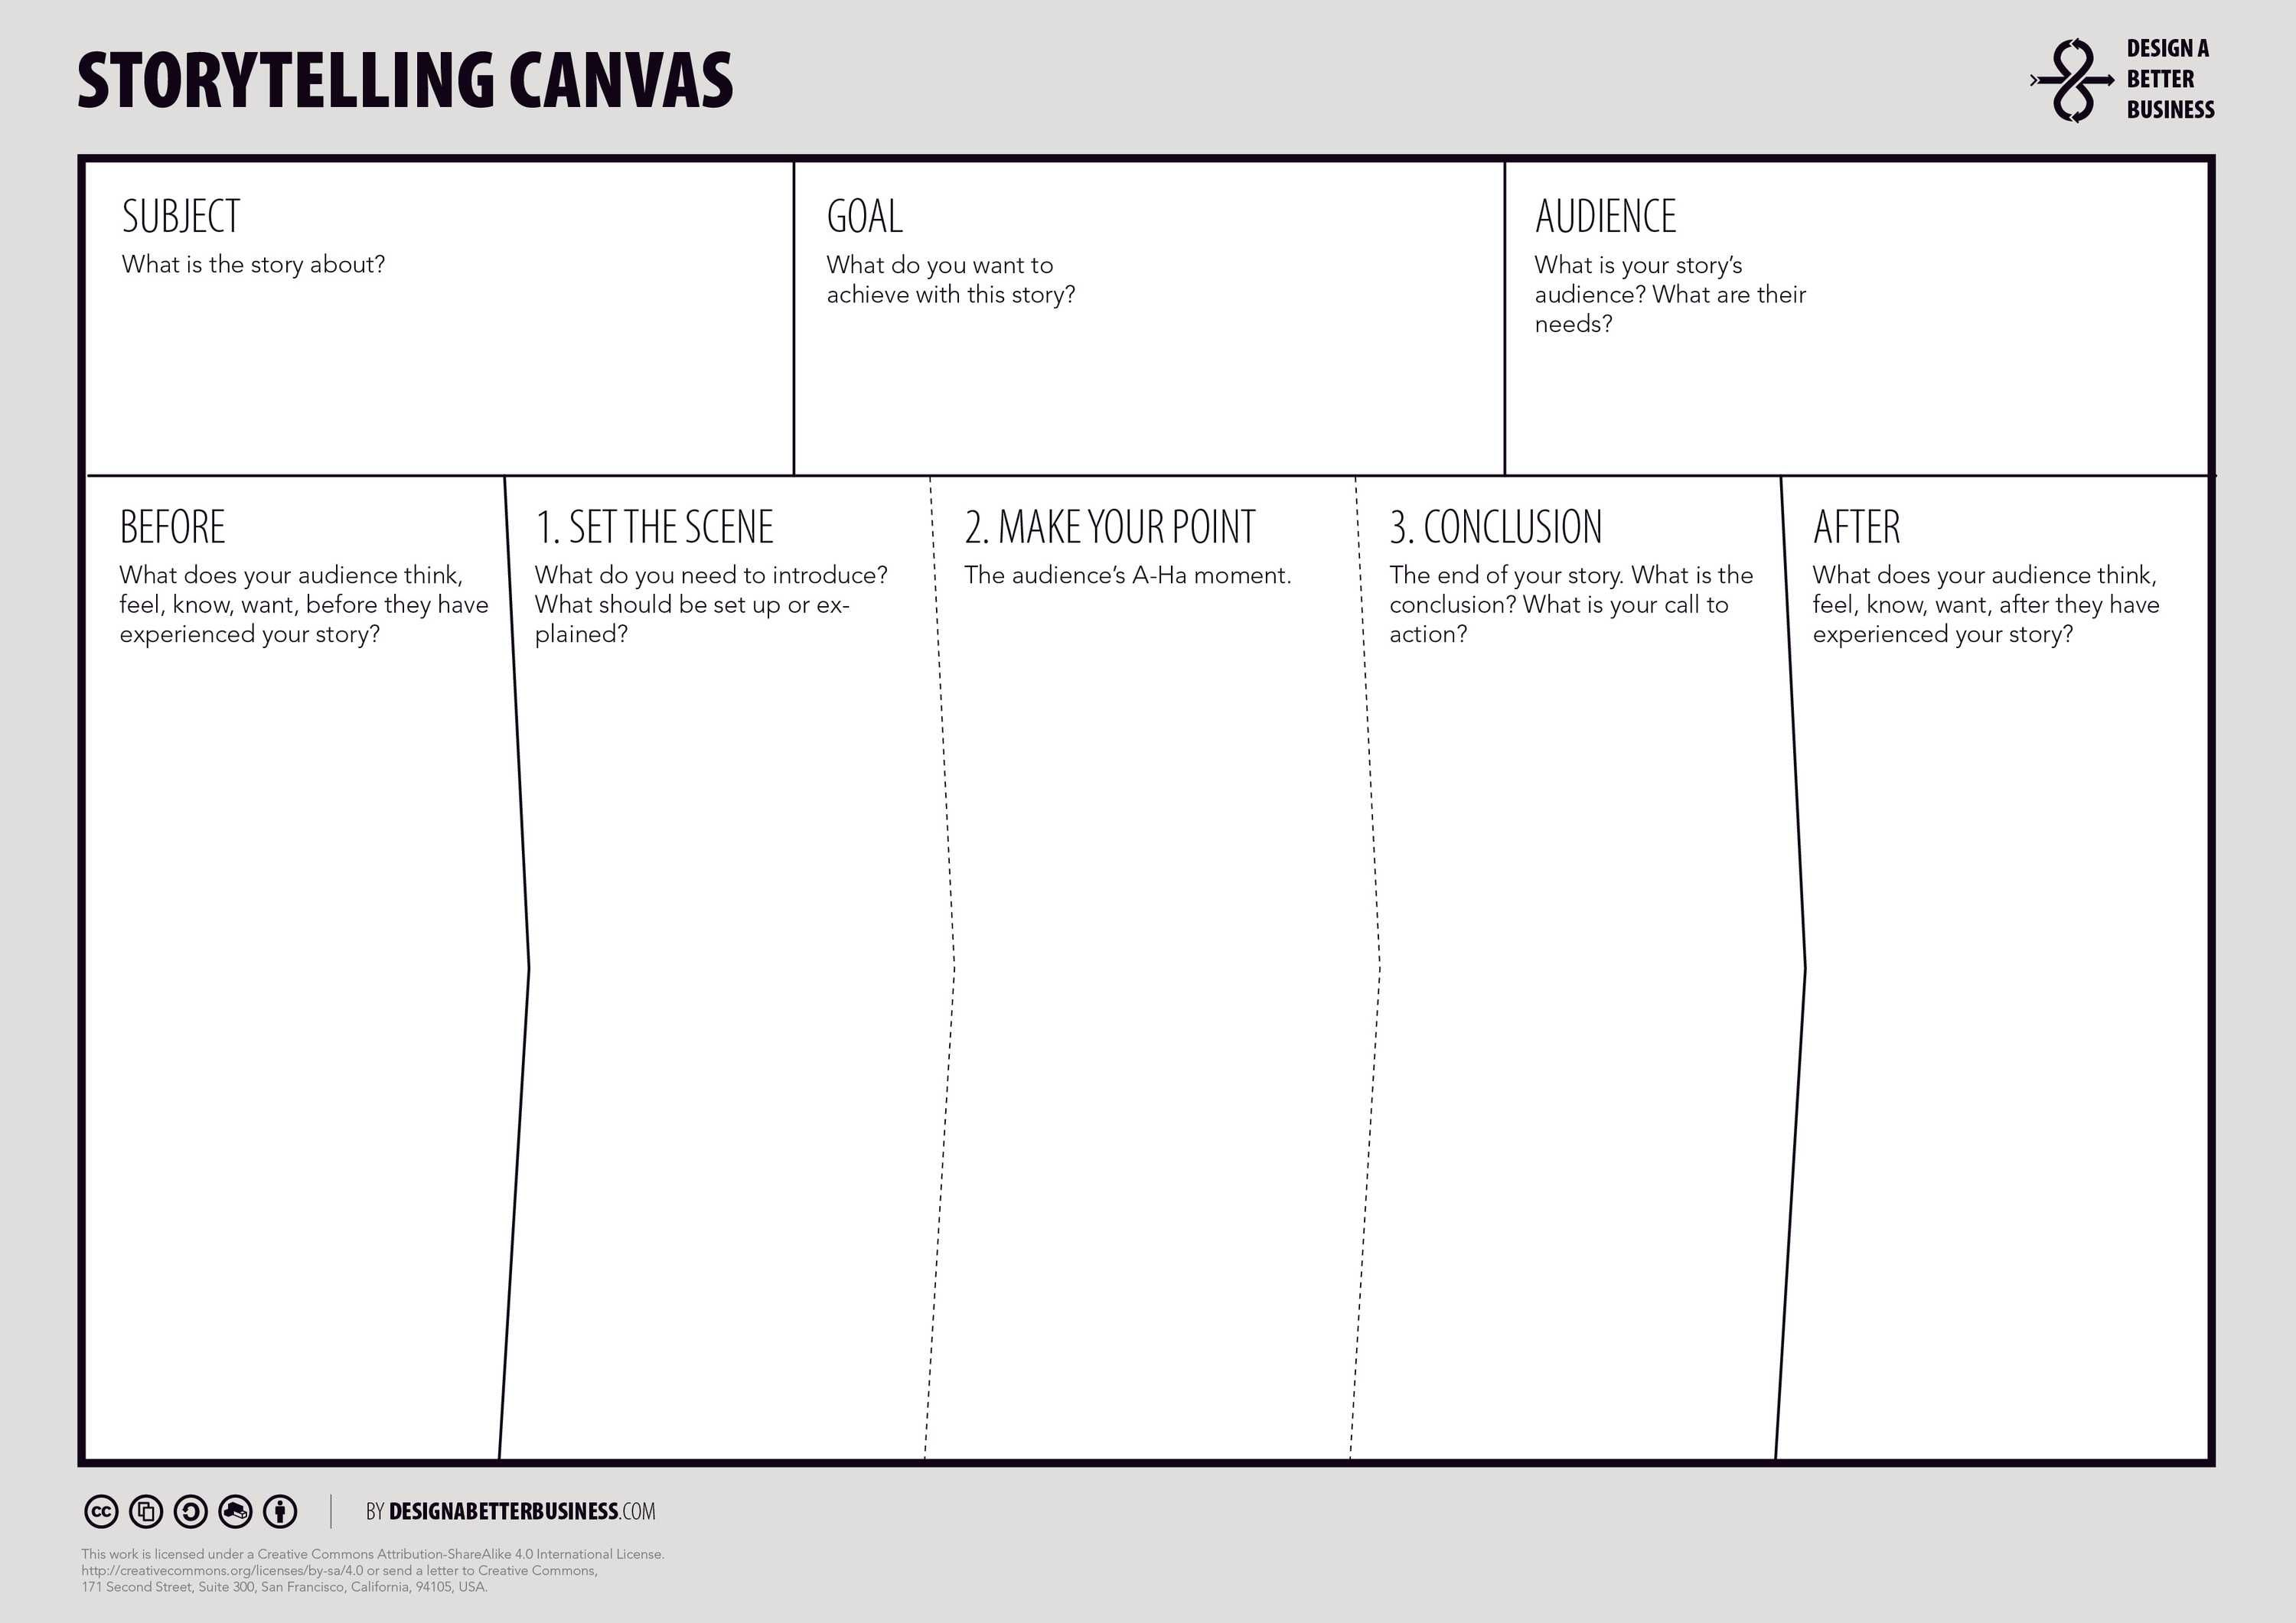 How To Use The Storytelling Canvas Storytelling Canvas Business Model Canvas